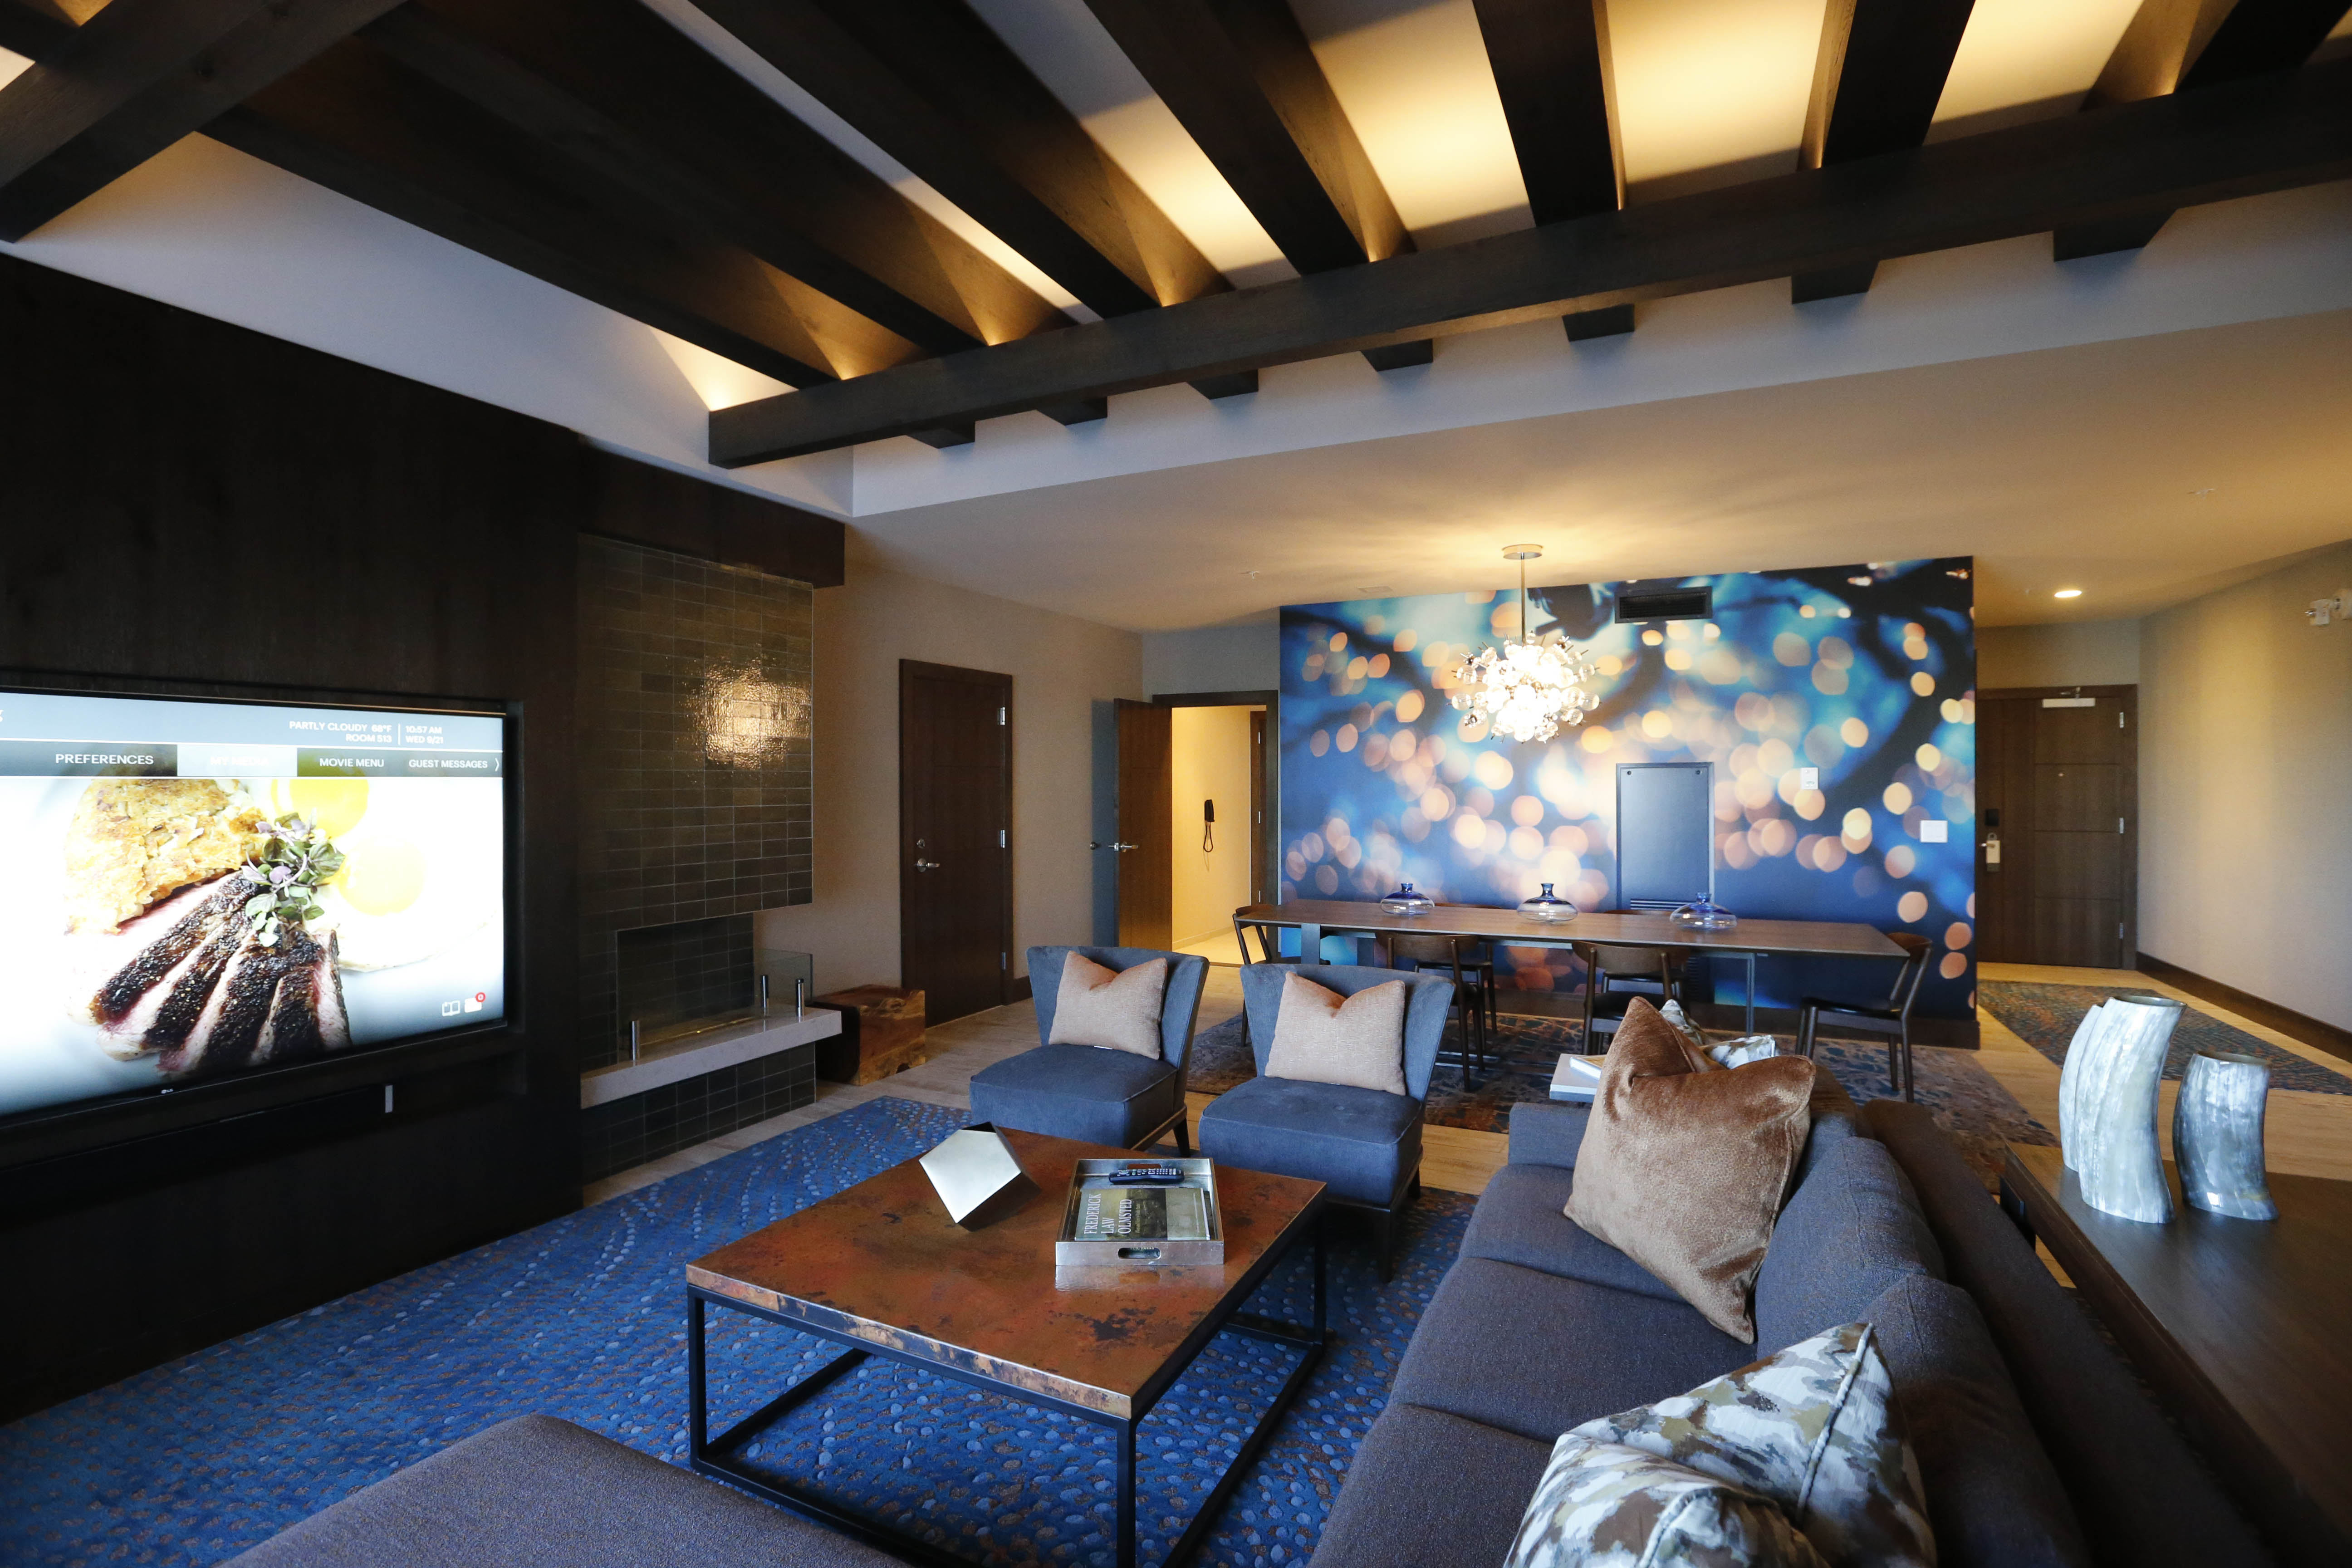 The Chairman's Suite in the new Westin Hotel.(Derek Gee/Buffalo News)